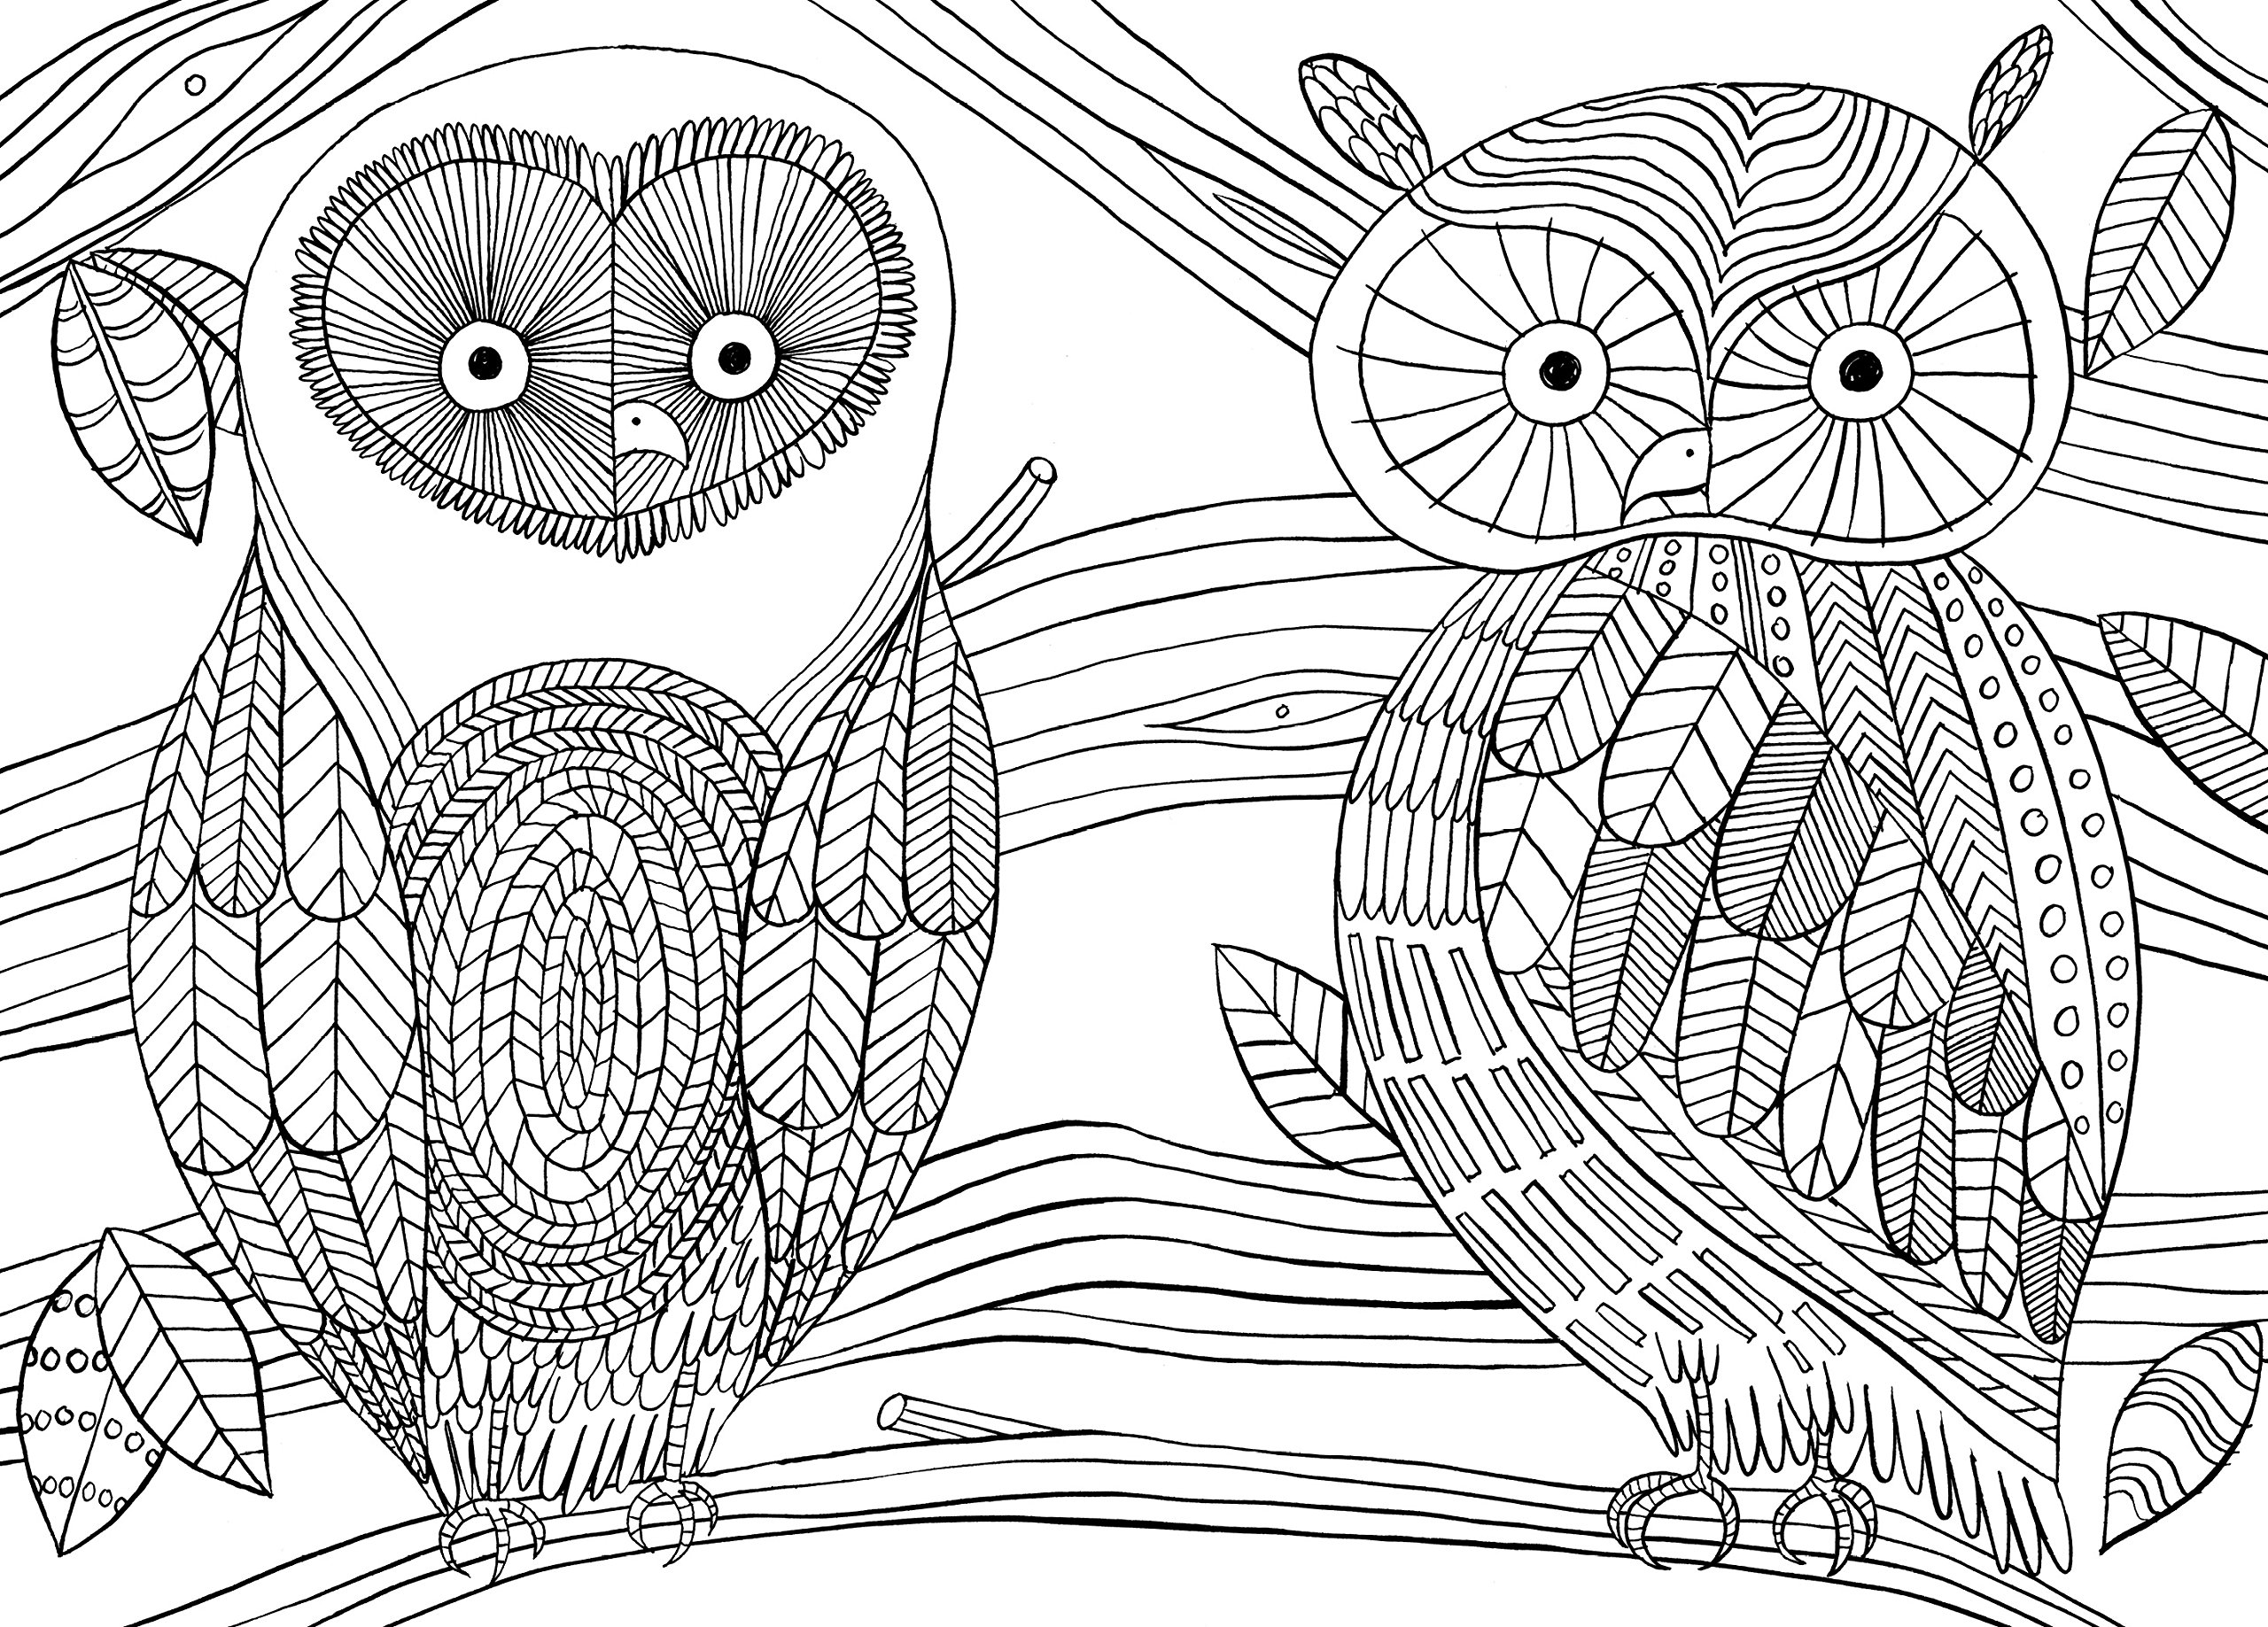 the complete mindfulness colouring book emma farrarons